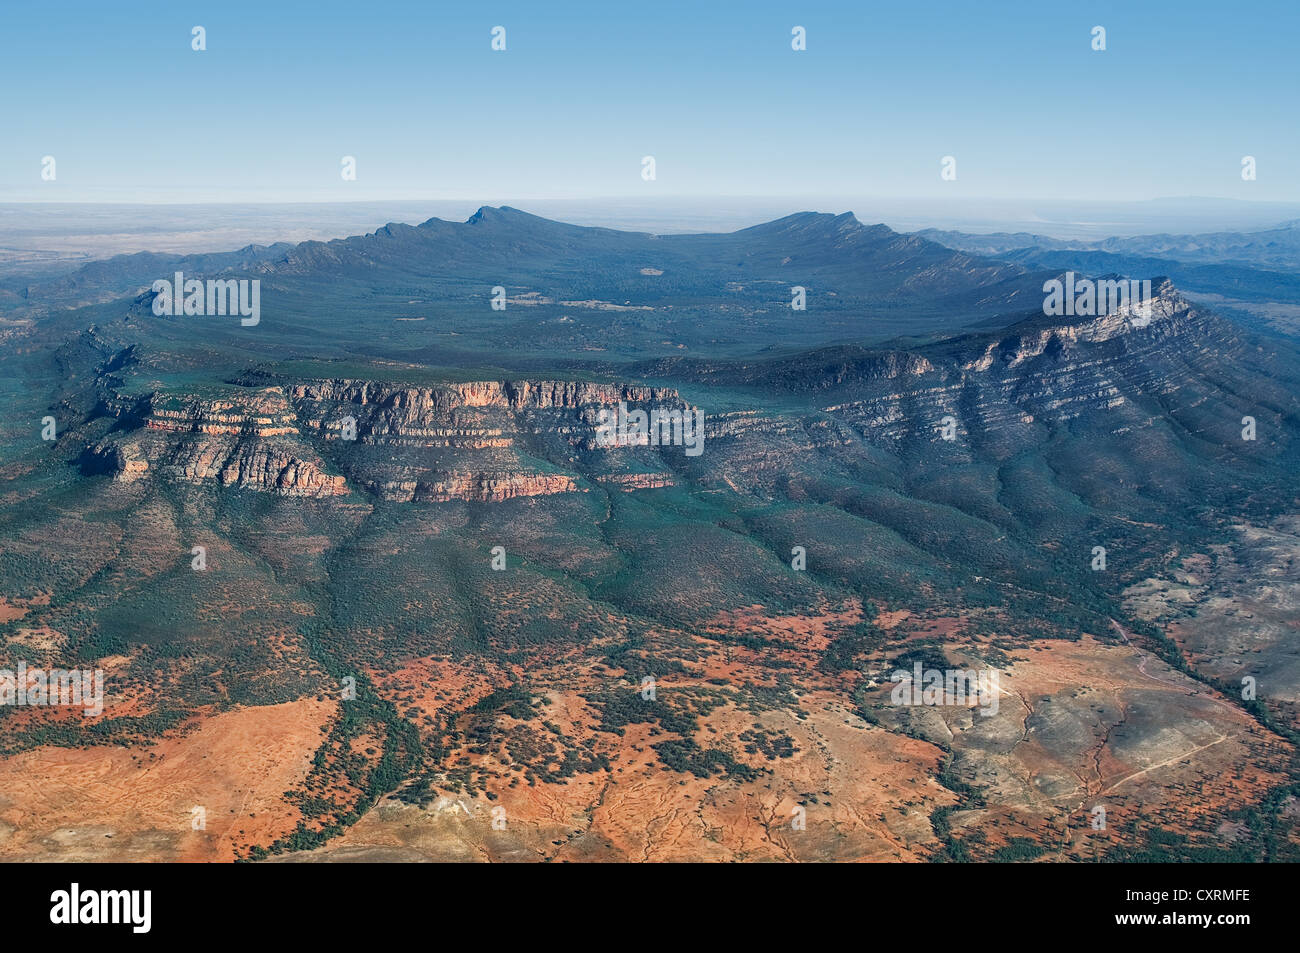 Aerial of Wilpena Pound in the Flinders Ranges. - Stock Image